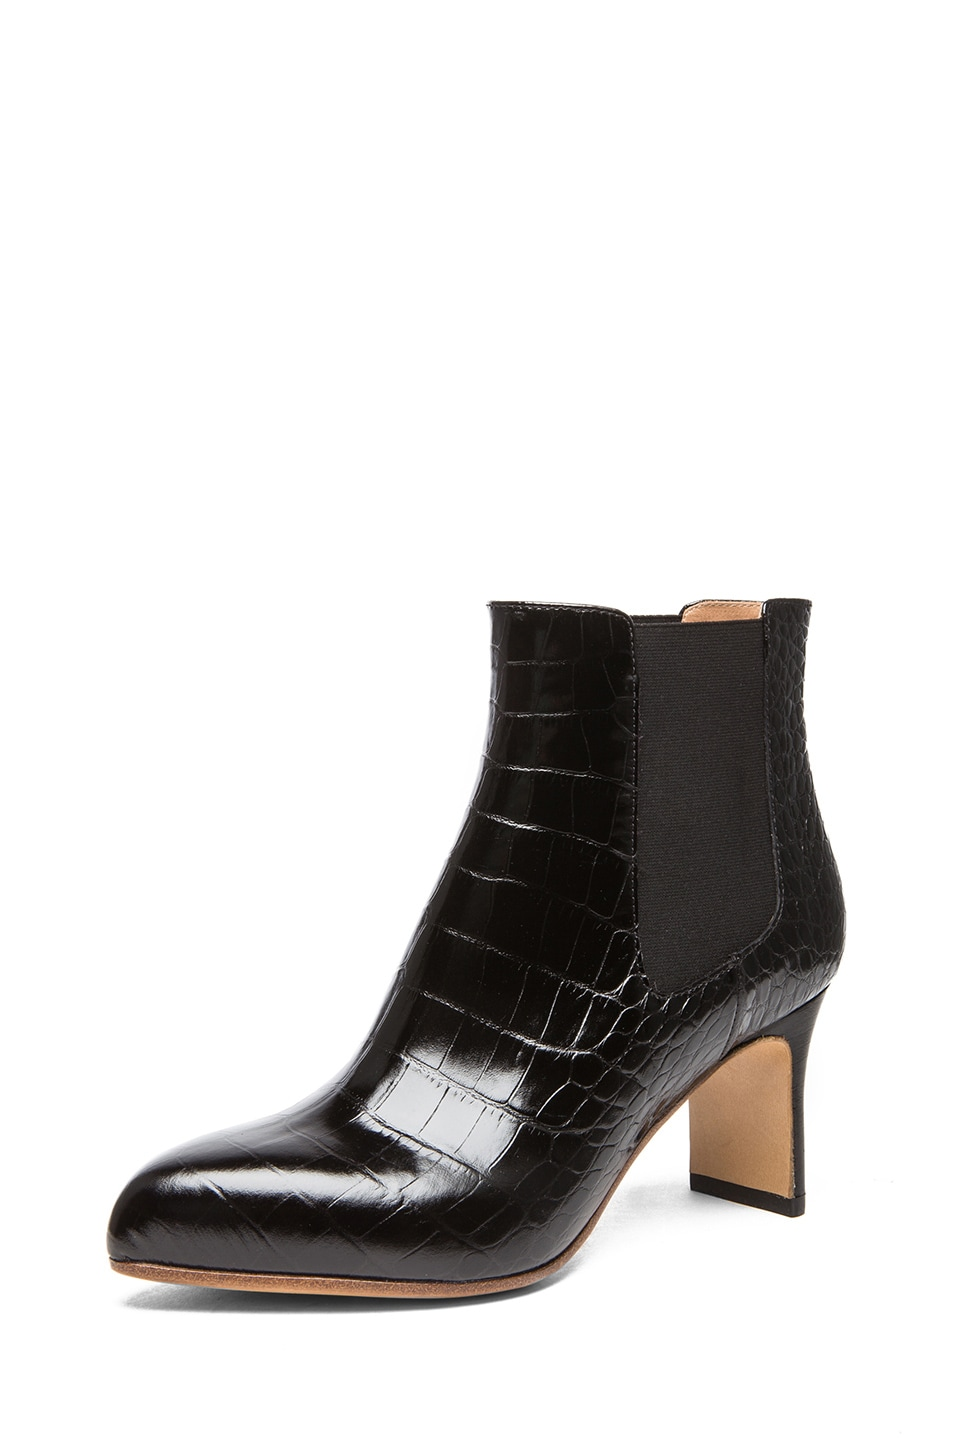 Image 2 of Maison Margiela Croc Embossed Leather Defile Booties in Black